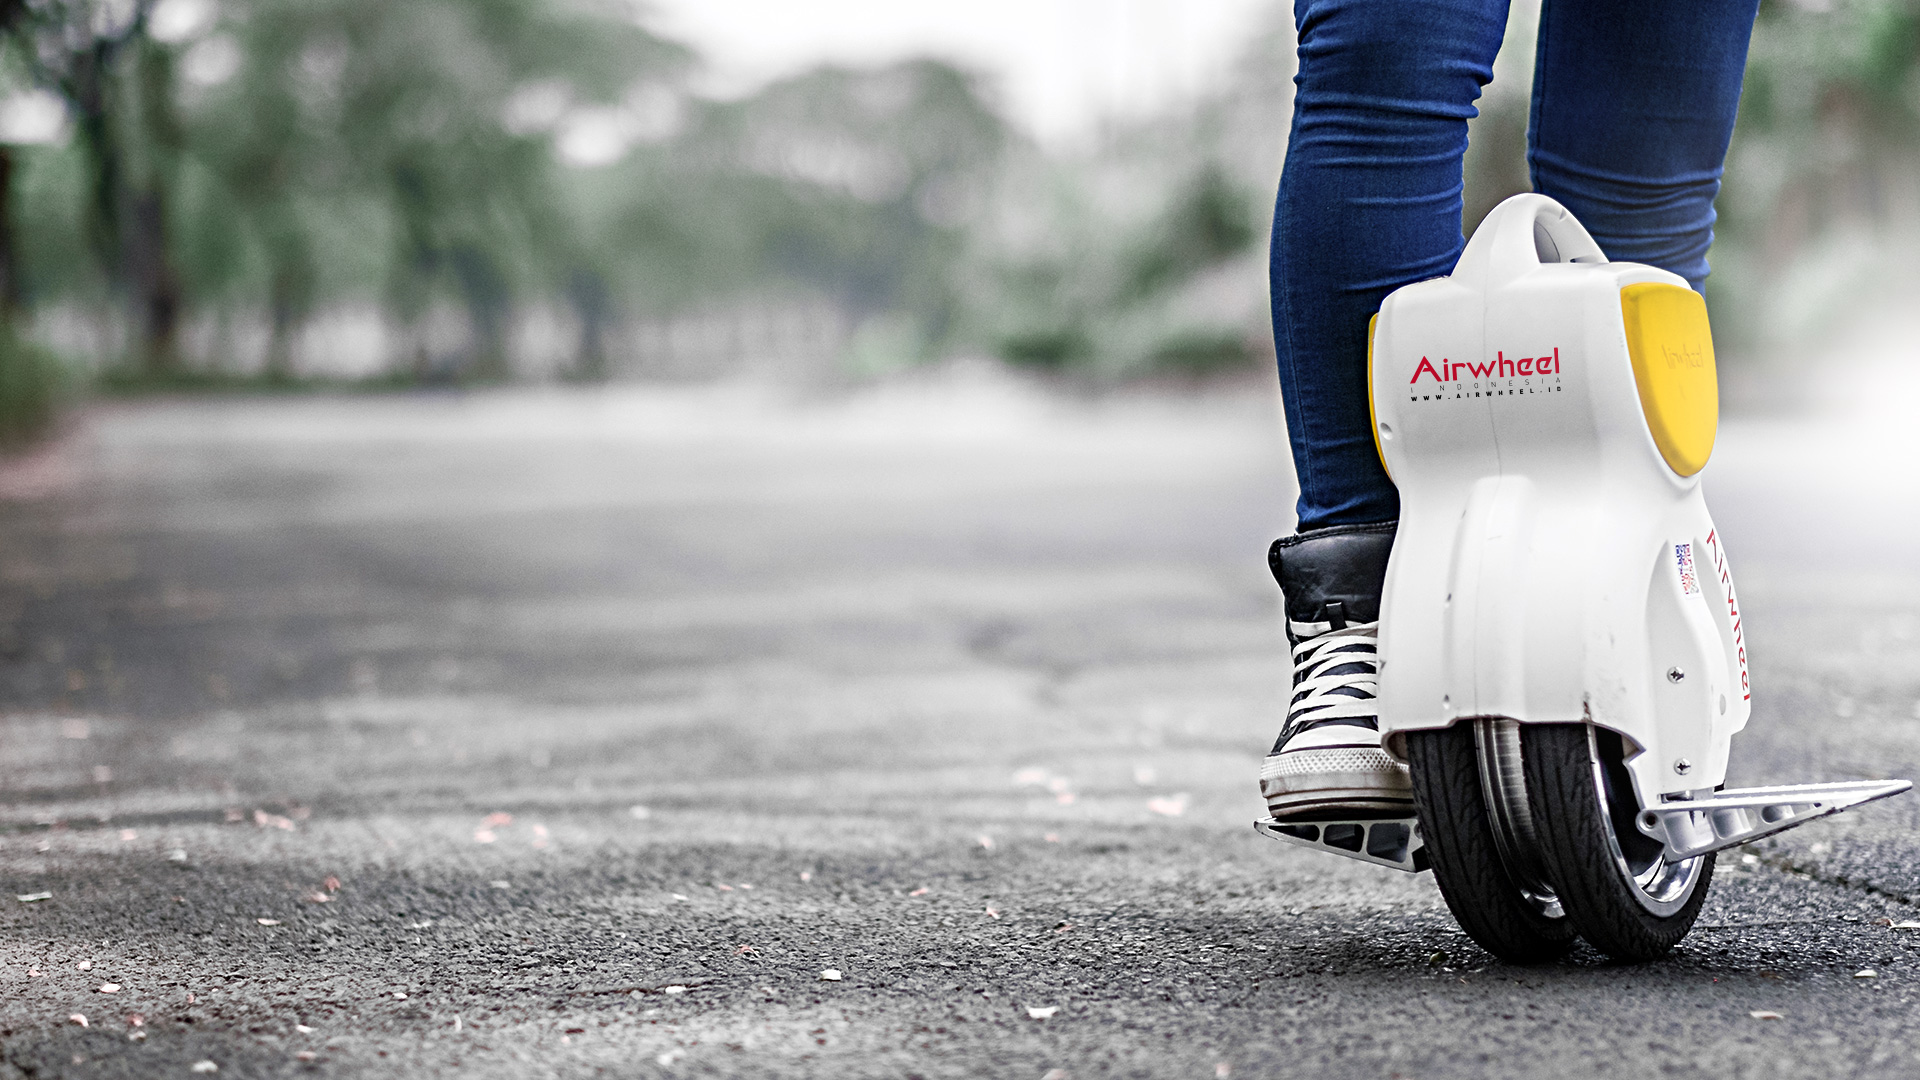 airwheel-and-other-modern-transportation